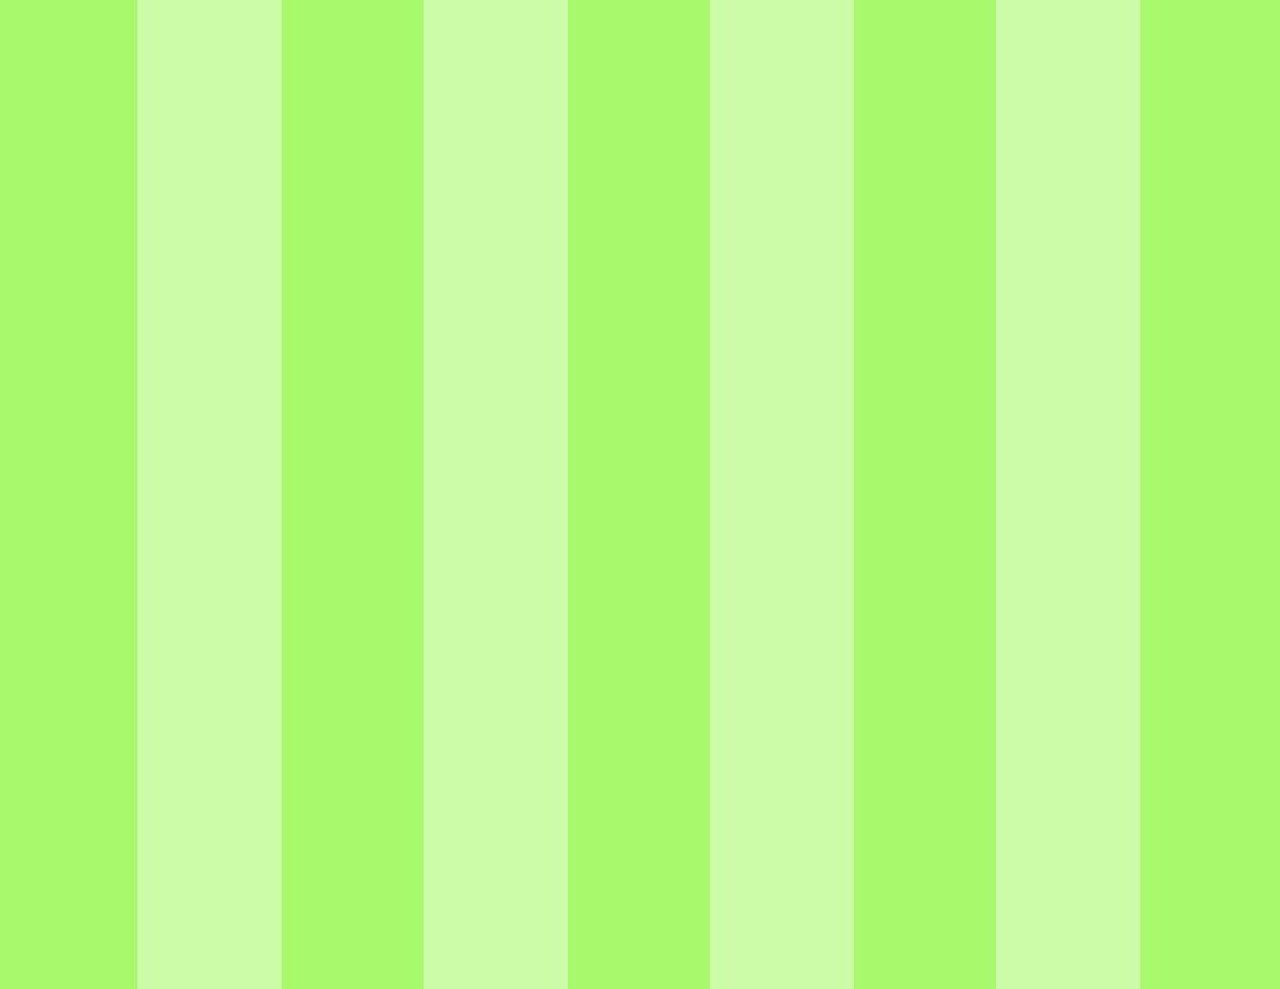 light green wallpaper designs - photo #20